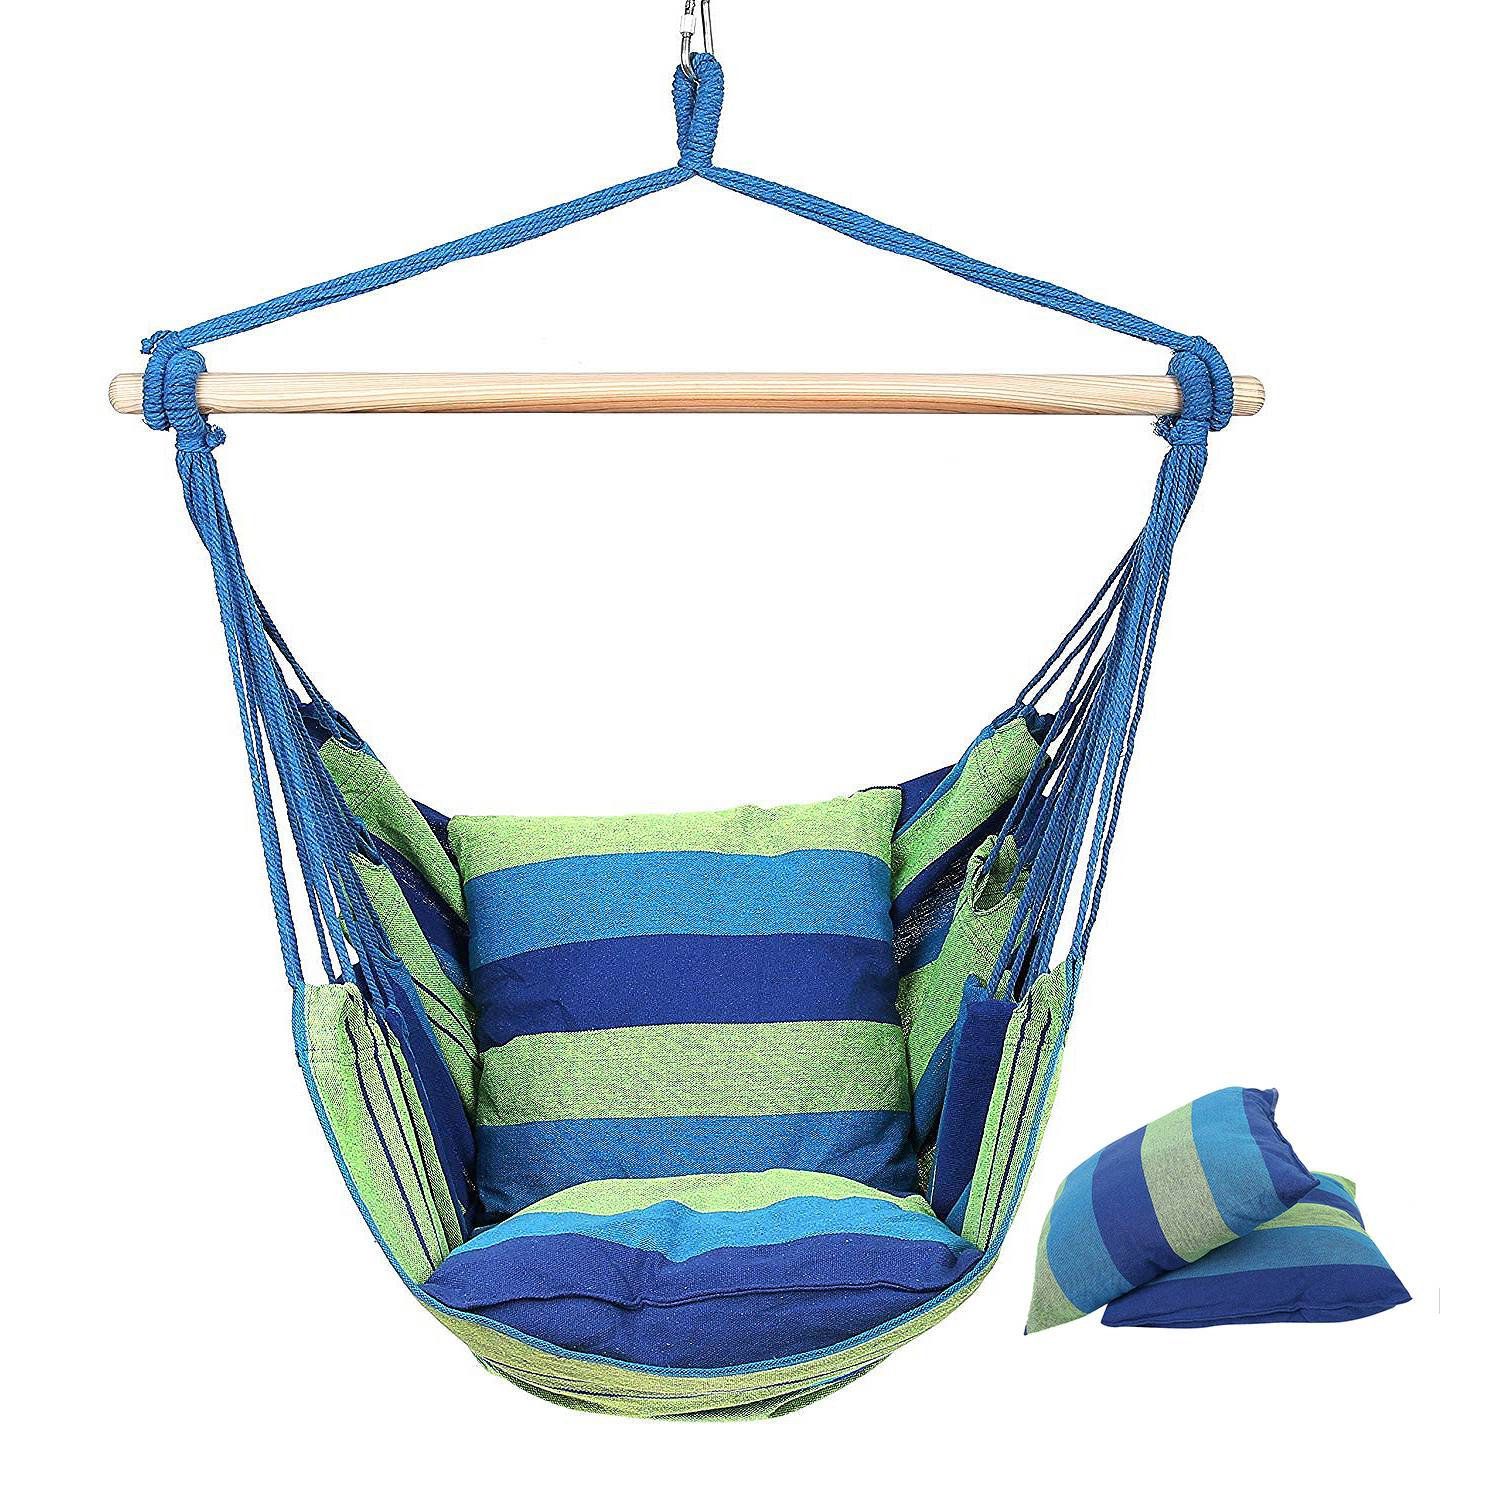 Top 9 Most Popular Indoor Hammock Chair Ideas And Get Free Shipping 91em6hb2